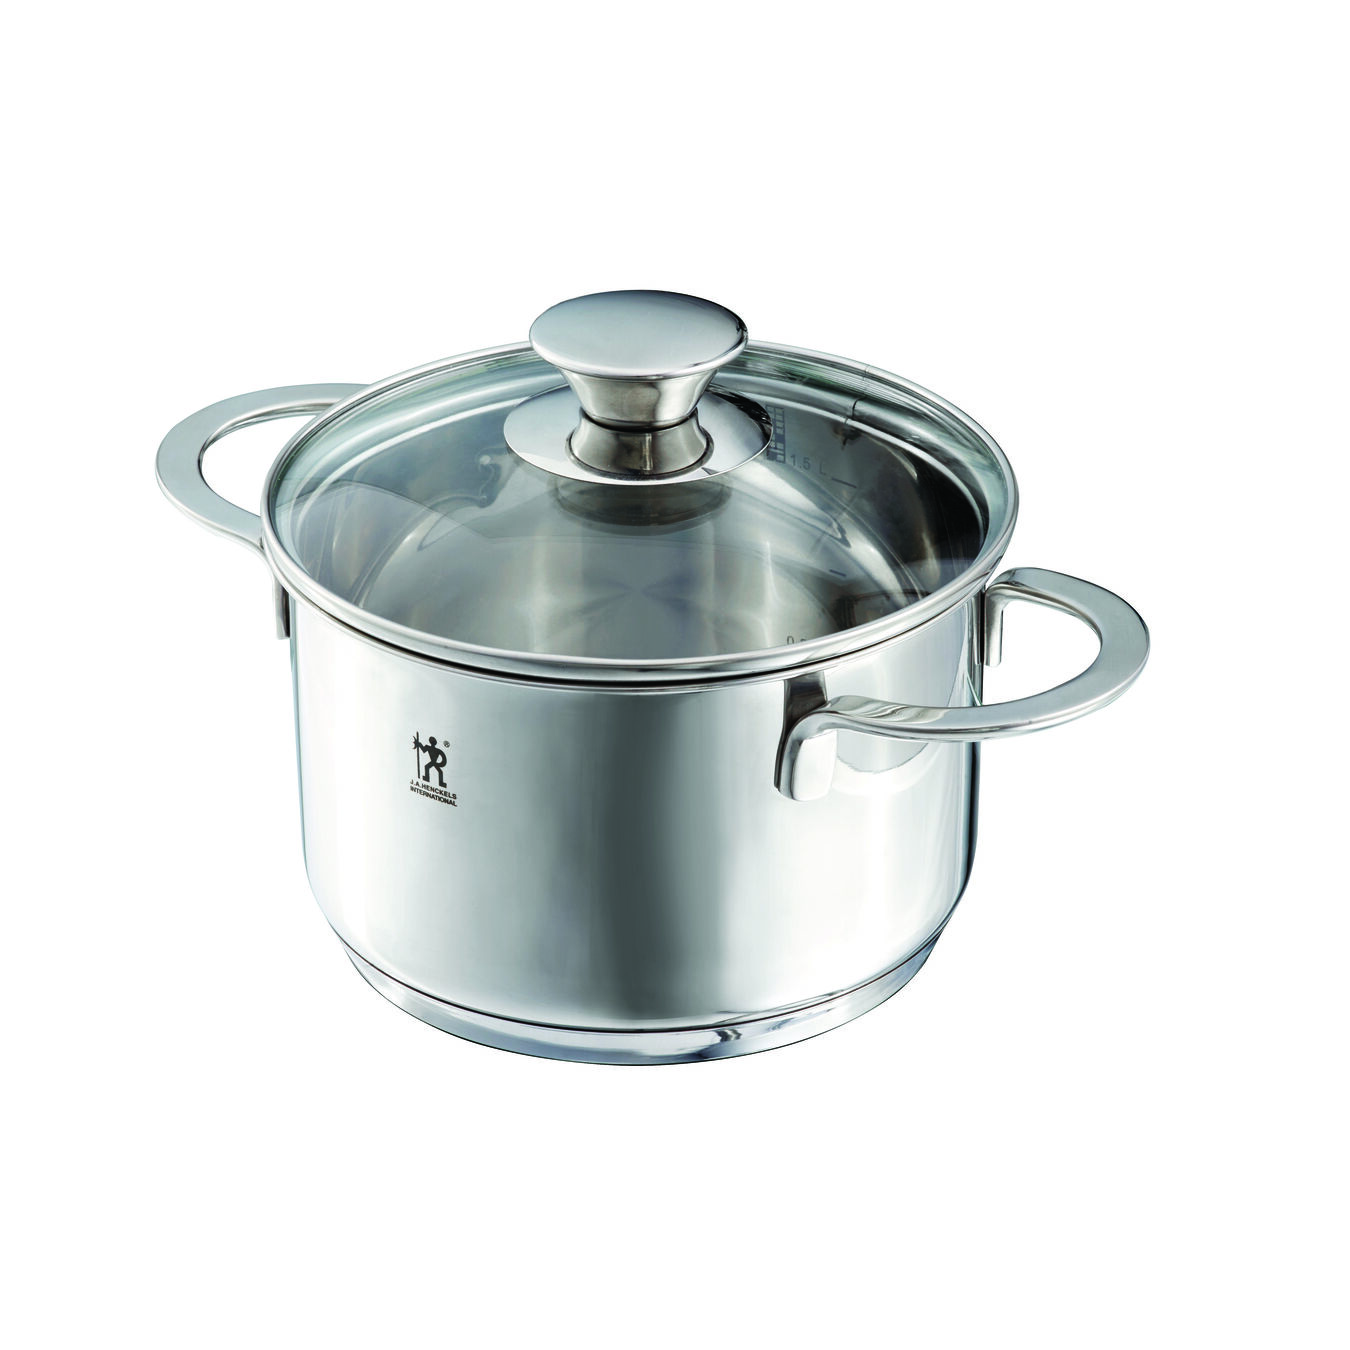 10 Piece 18/10 Stainless Steel Cookware set,,large 3